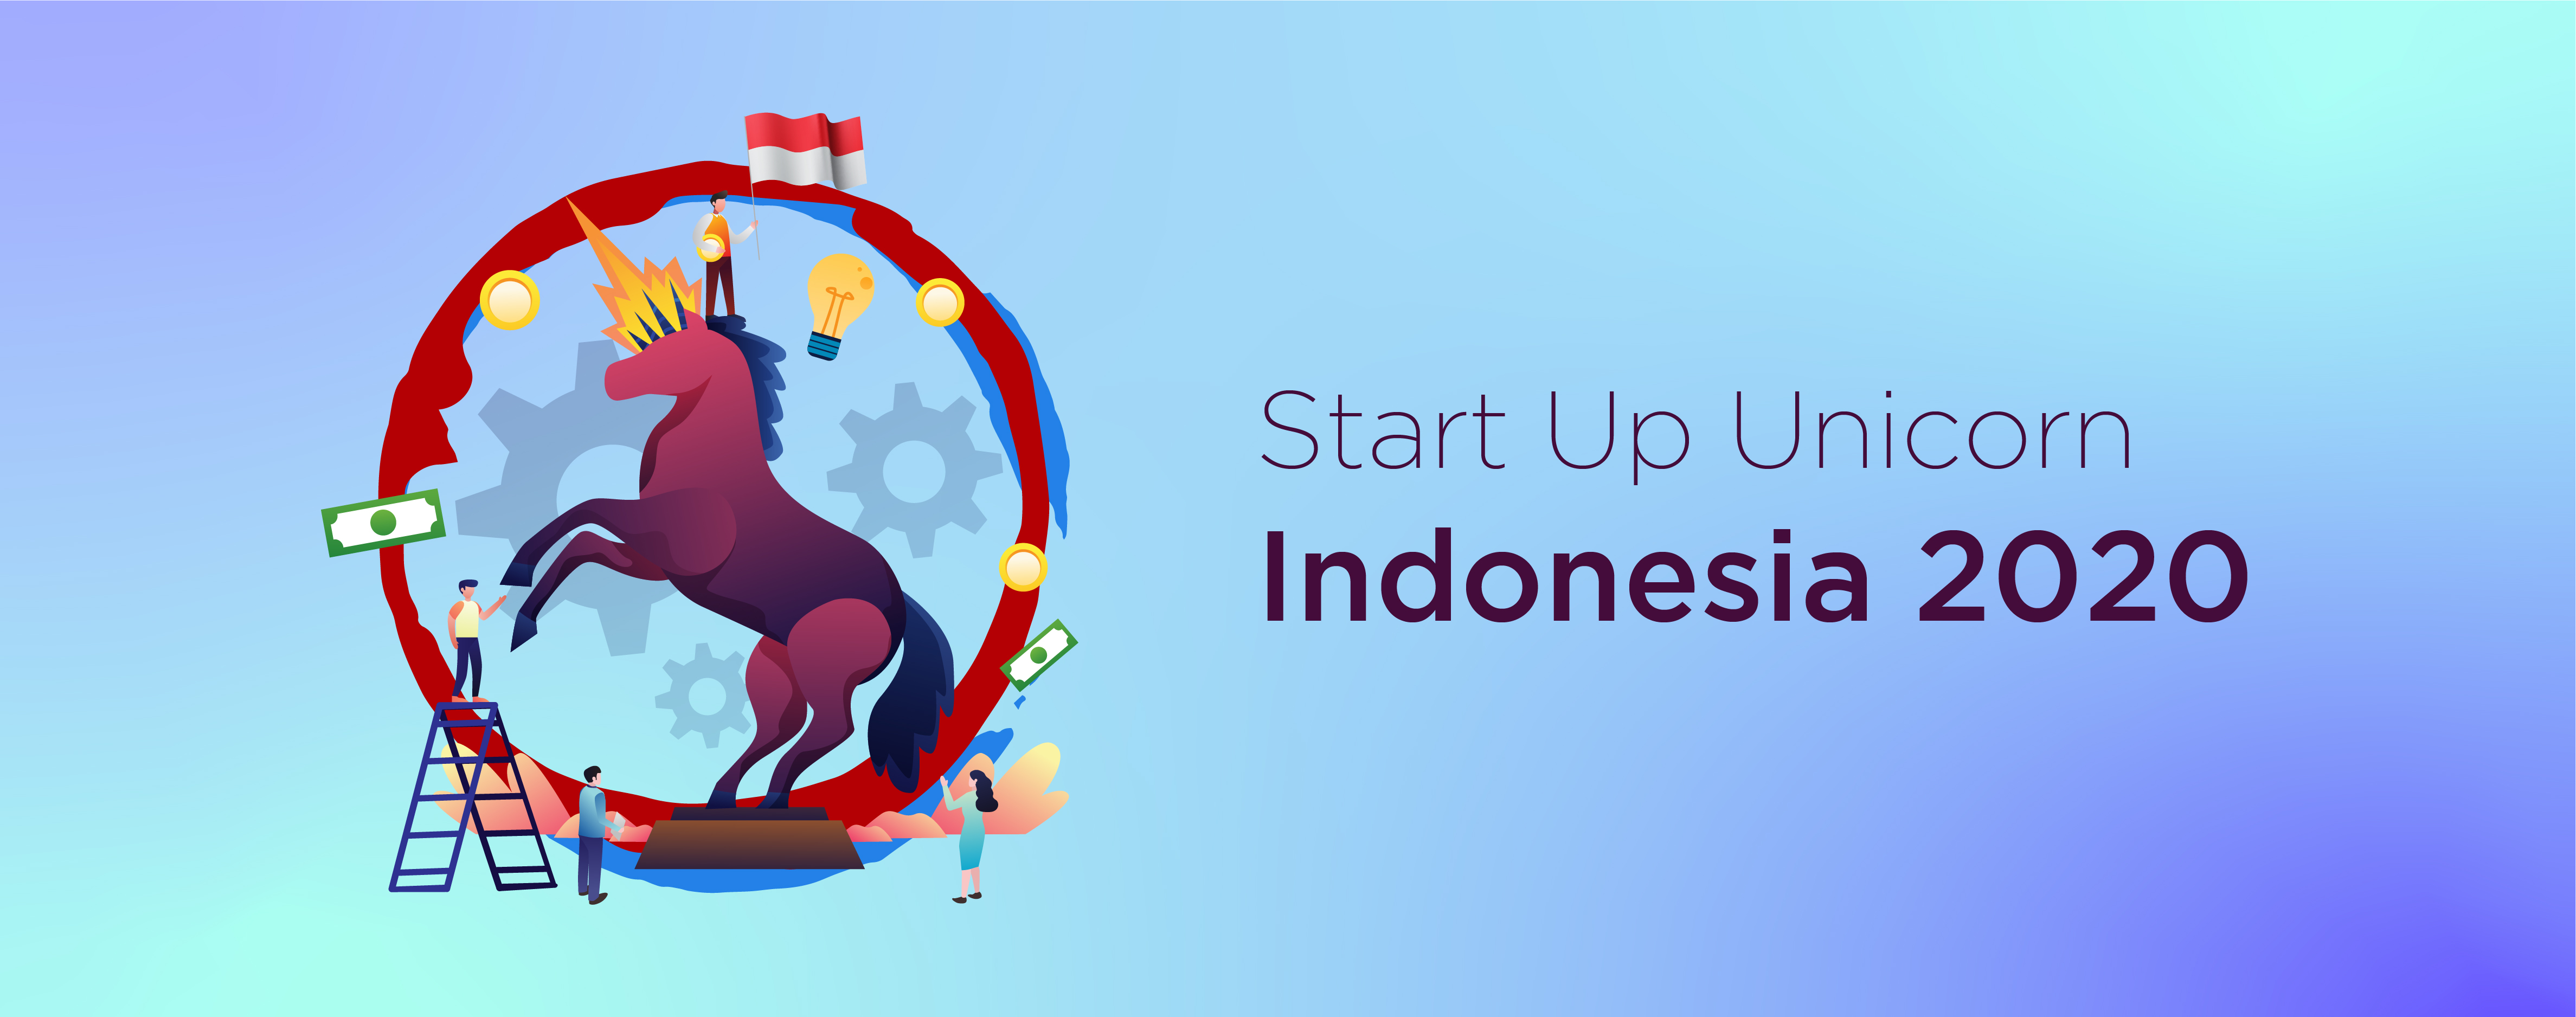 START UP UNICORN INDONESIA 2020